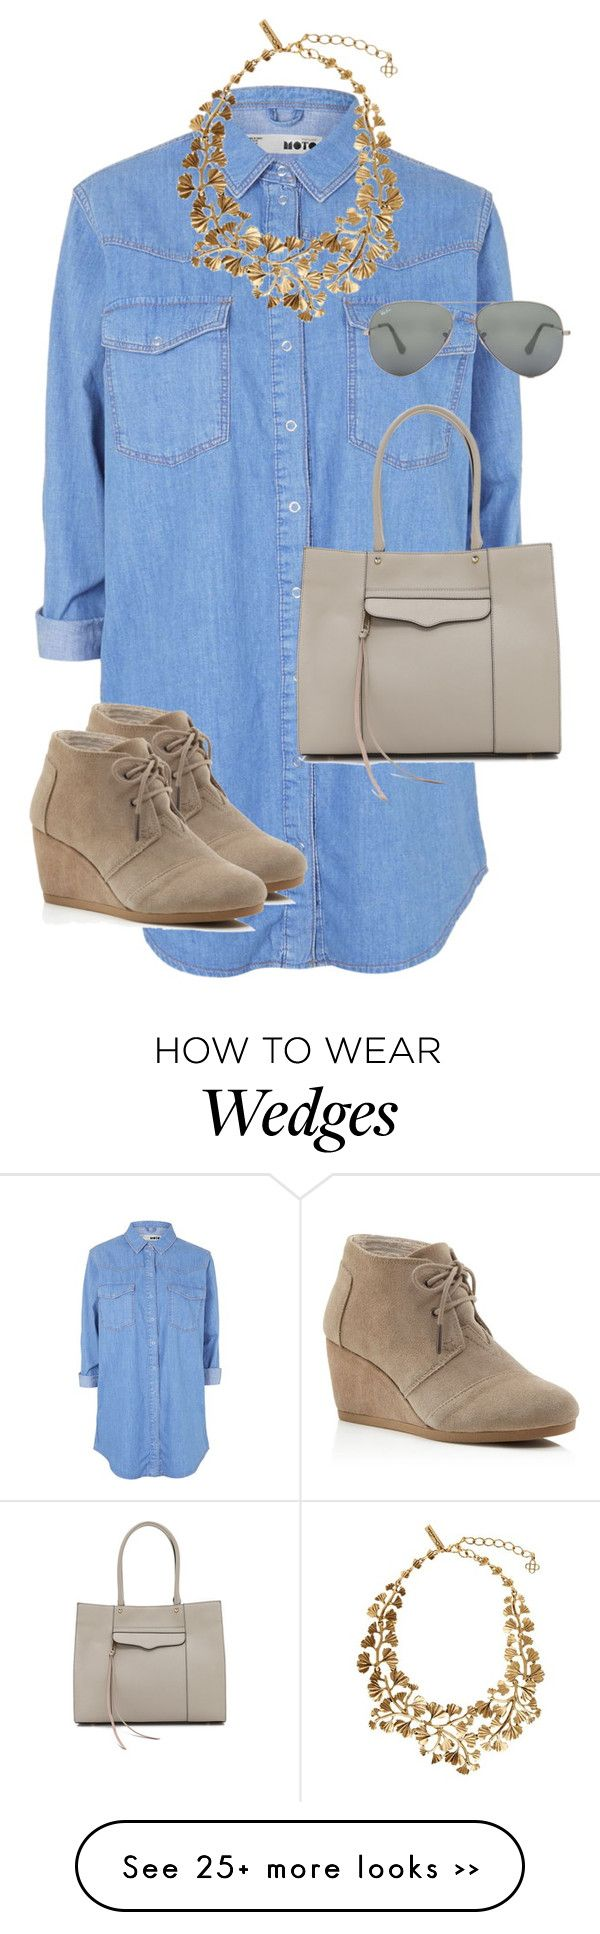 """Untitled #9432"" by alexsrogers on Polyvore featuring Topshop, TOMS, Ray-Ban, Oscar de la Renta and Rebecca Minkoff"